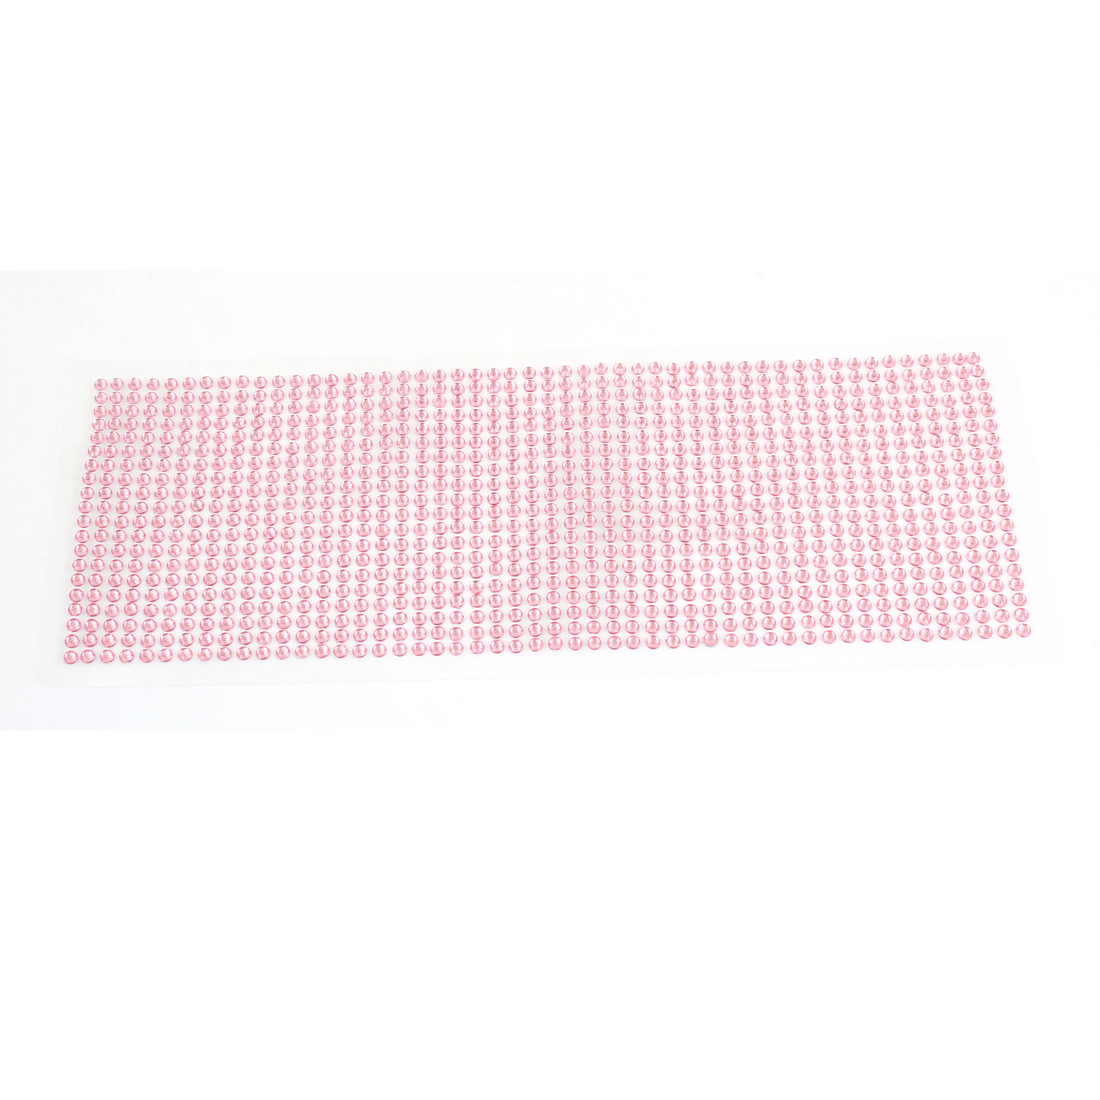 "Car Auto Pink 4mm Dia Glittery Rhinstones Detailing DIY Stickers Decal 10"" Long"